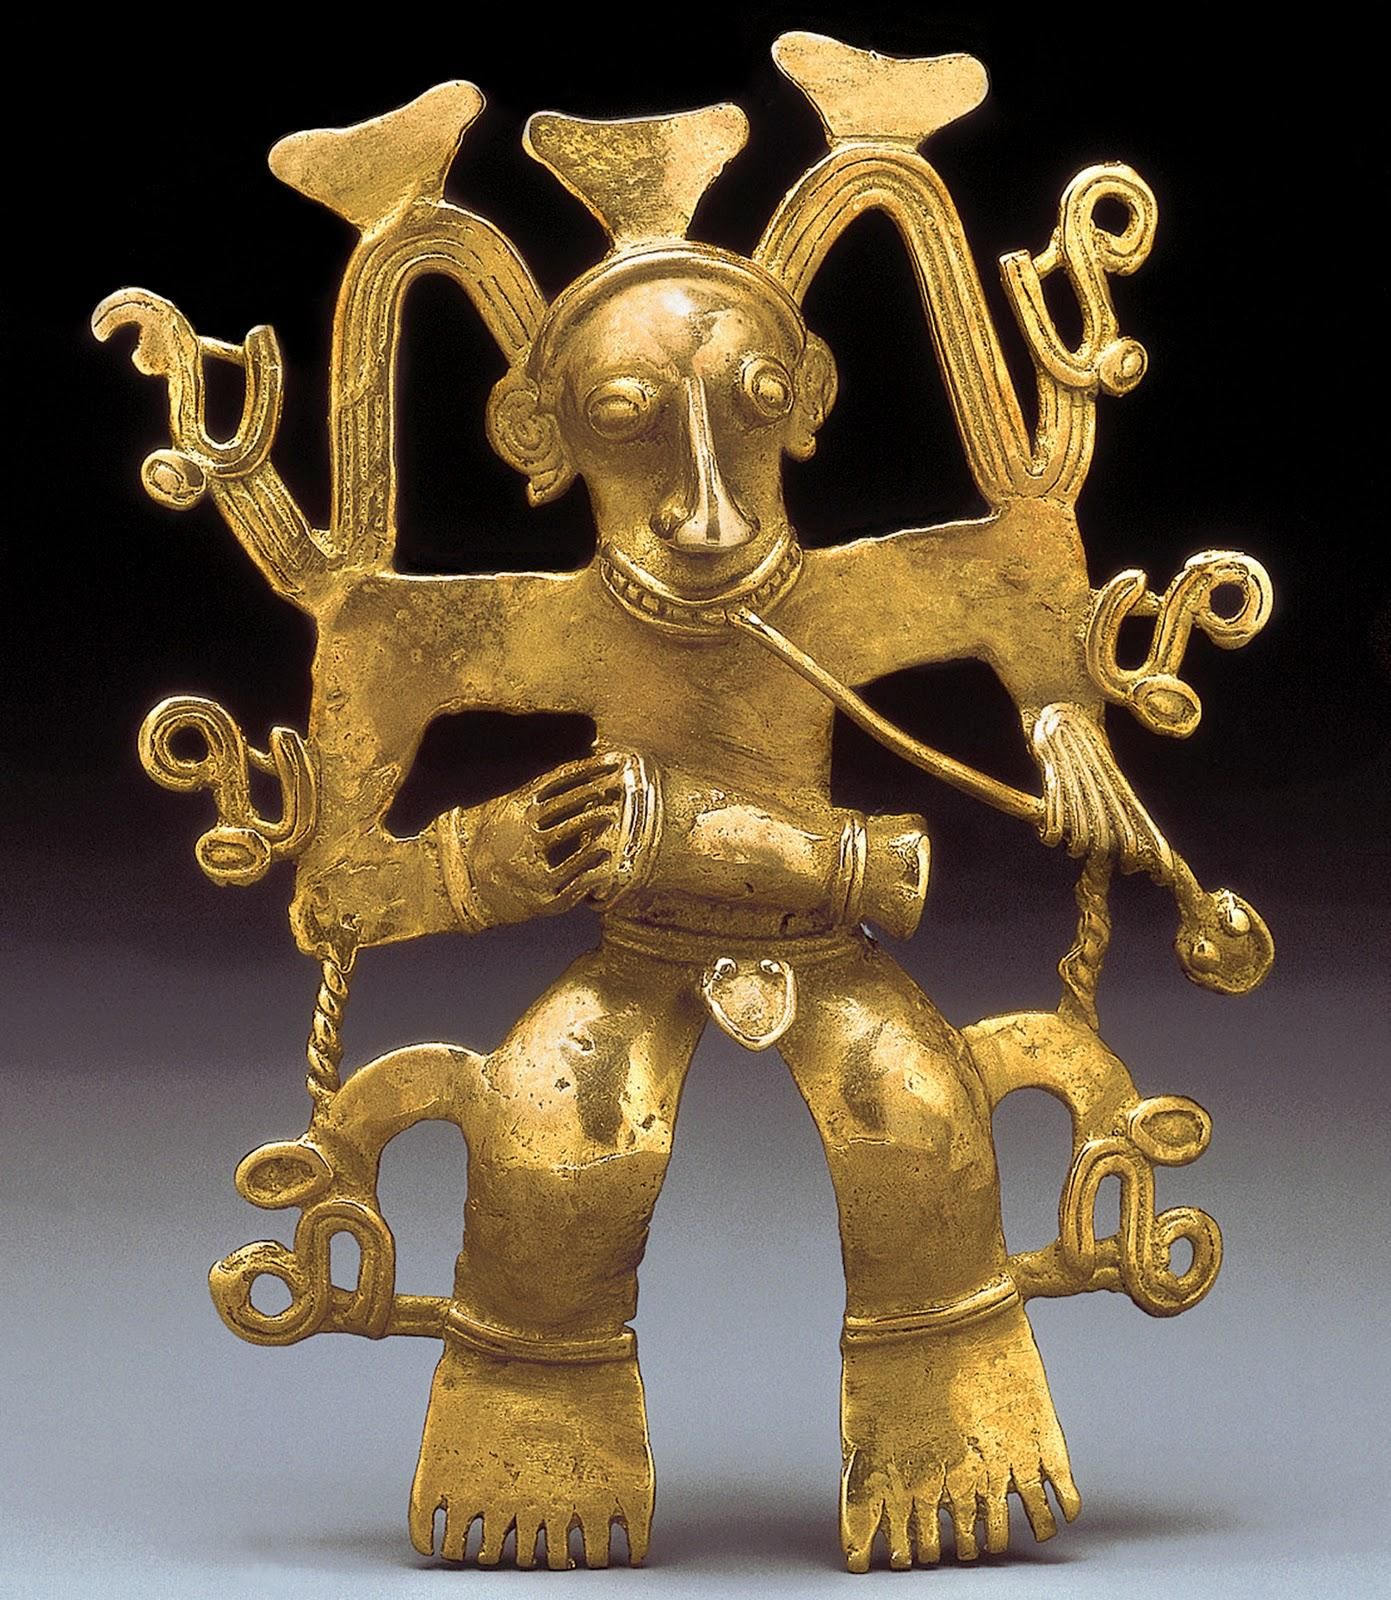 Shaman with Drum and Snake; Costa Rica. c. 13-16th century CE. Gold. In the Diquis mythology, figures like the one shown display the importance of animals in the culture. Pin by GT